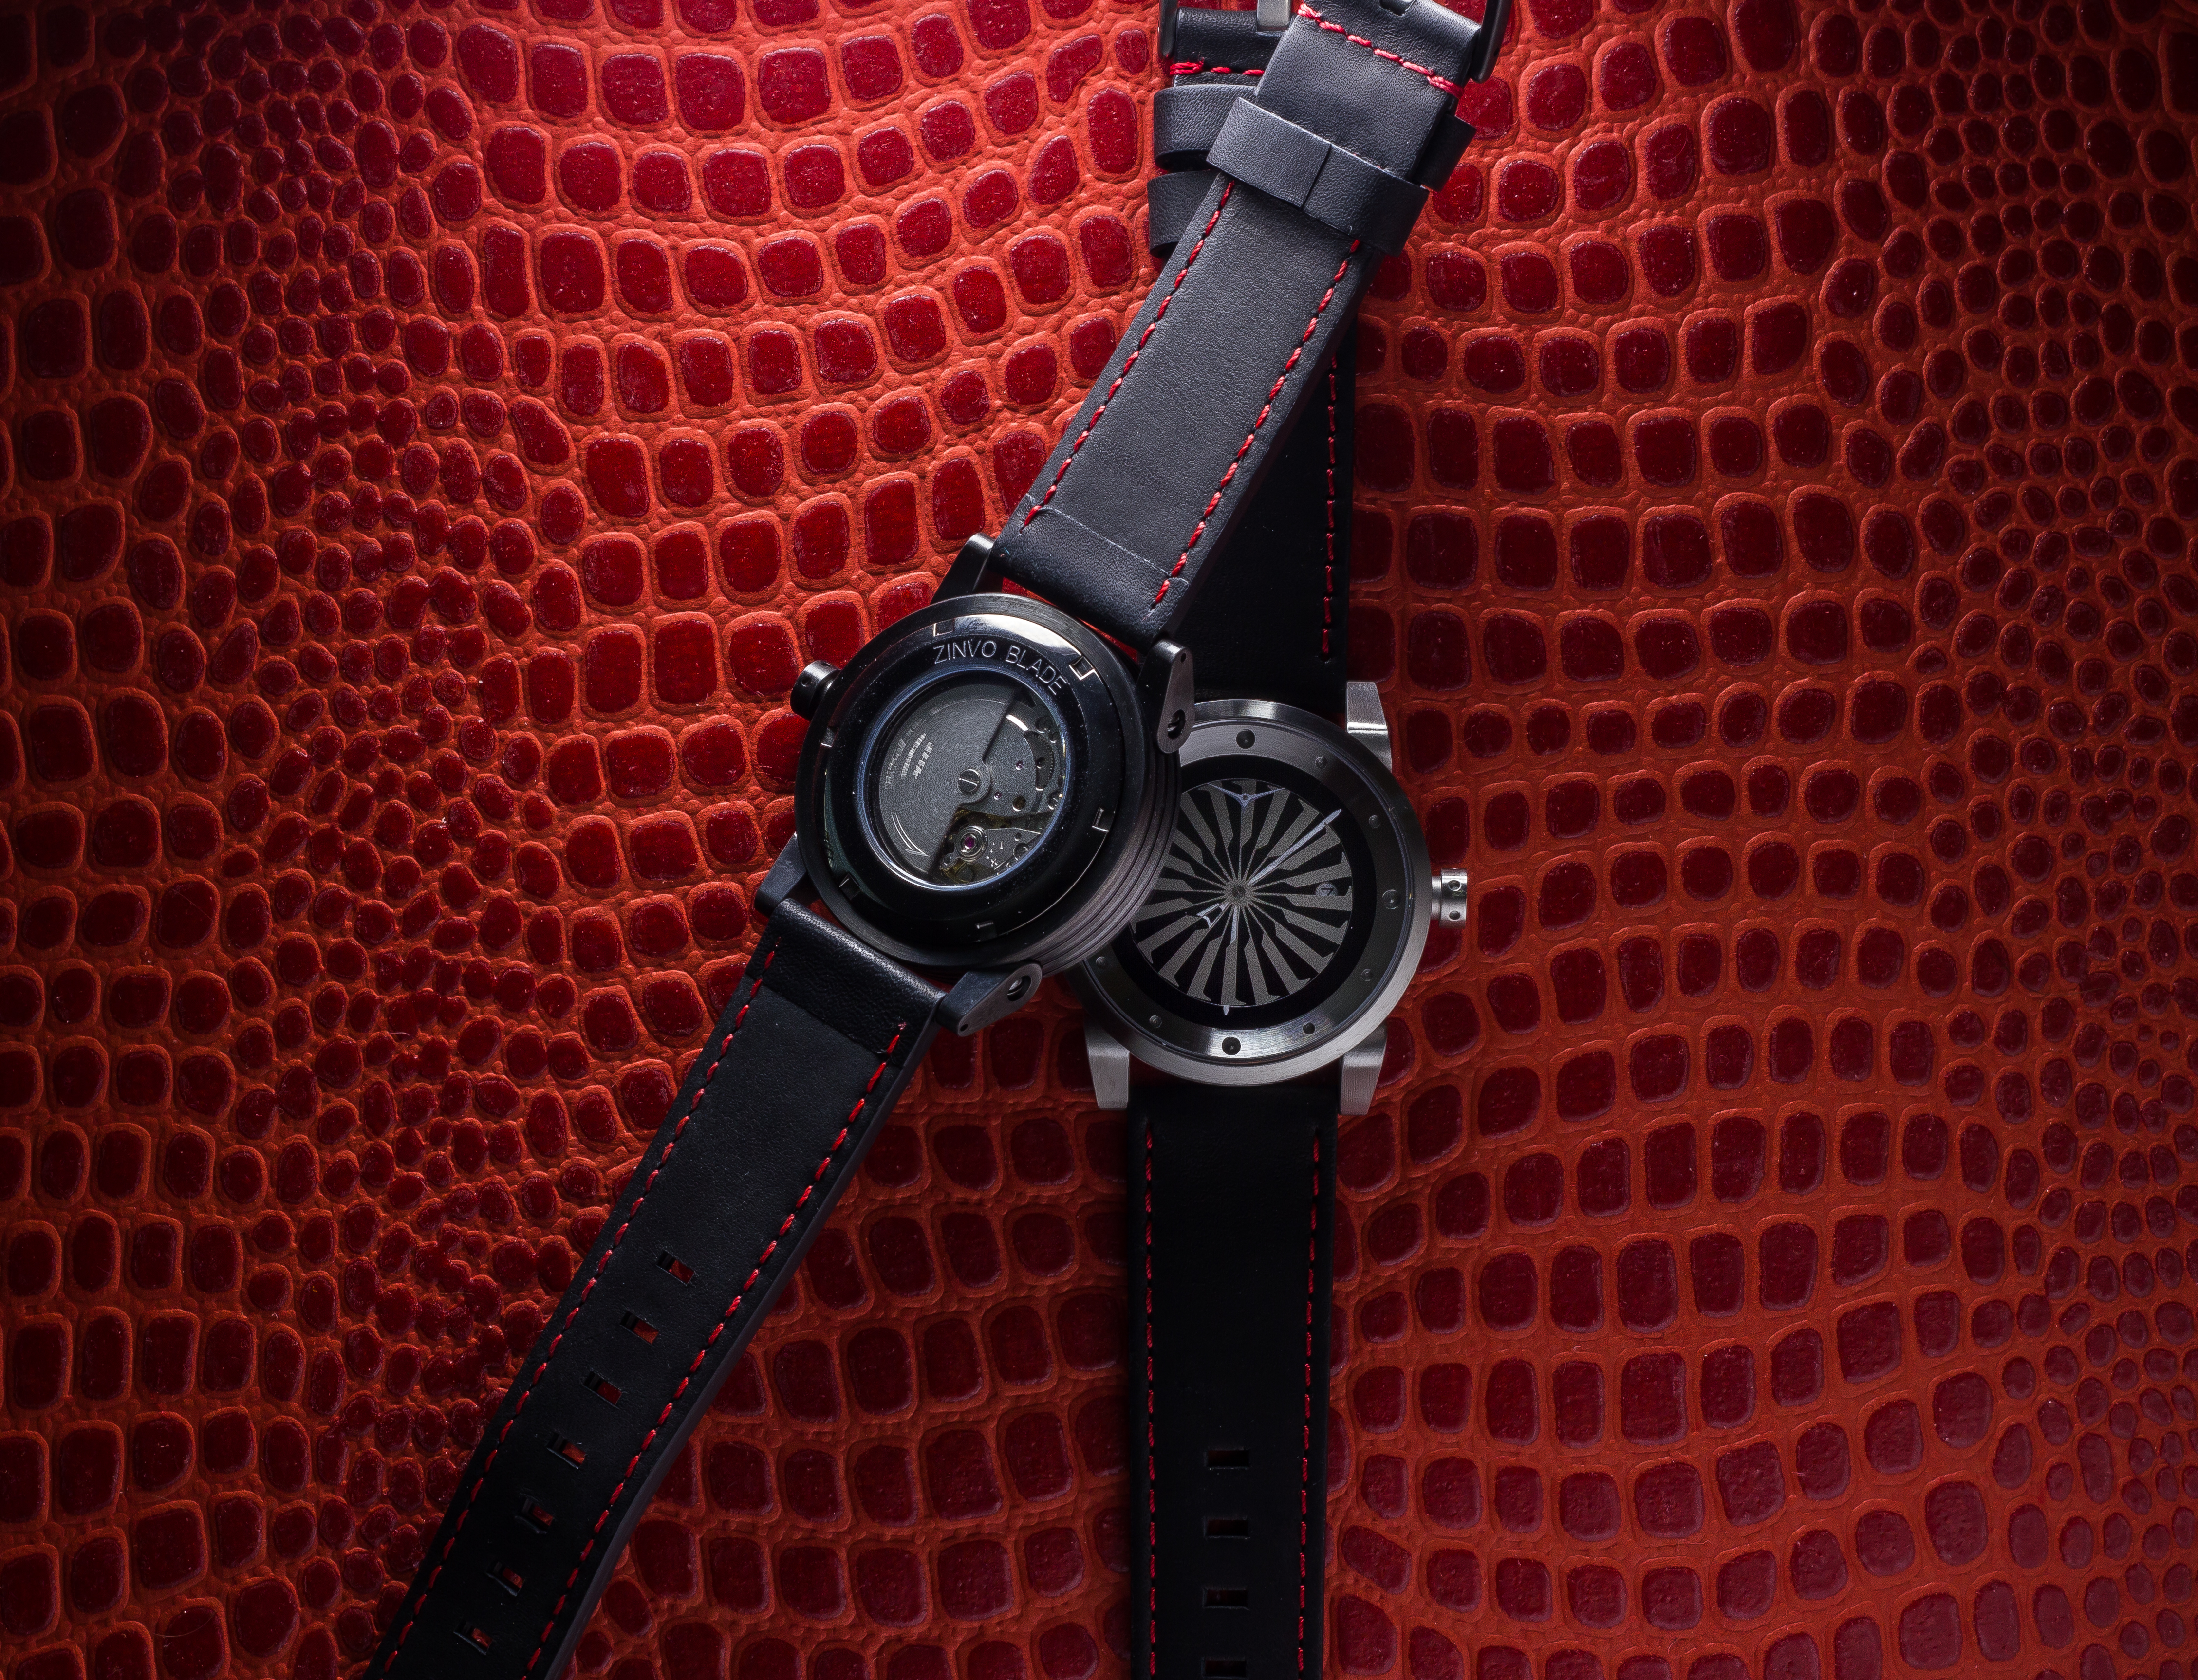 How to Photograph Watches